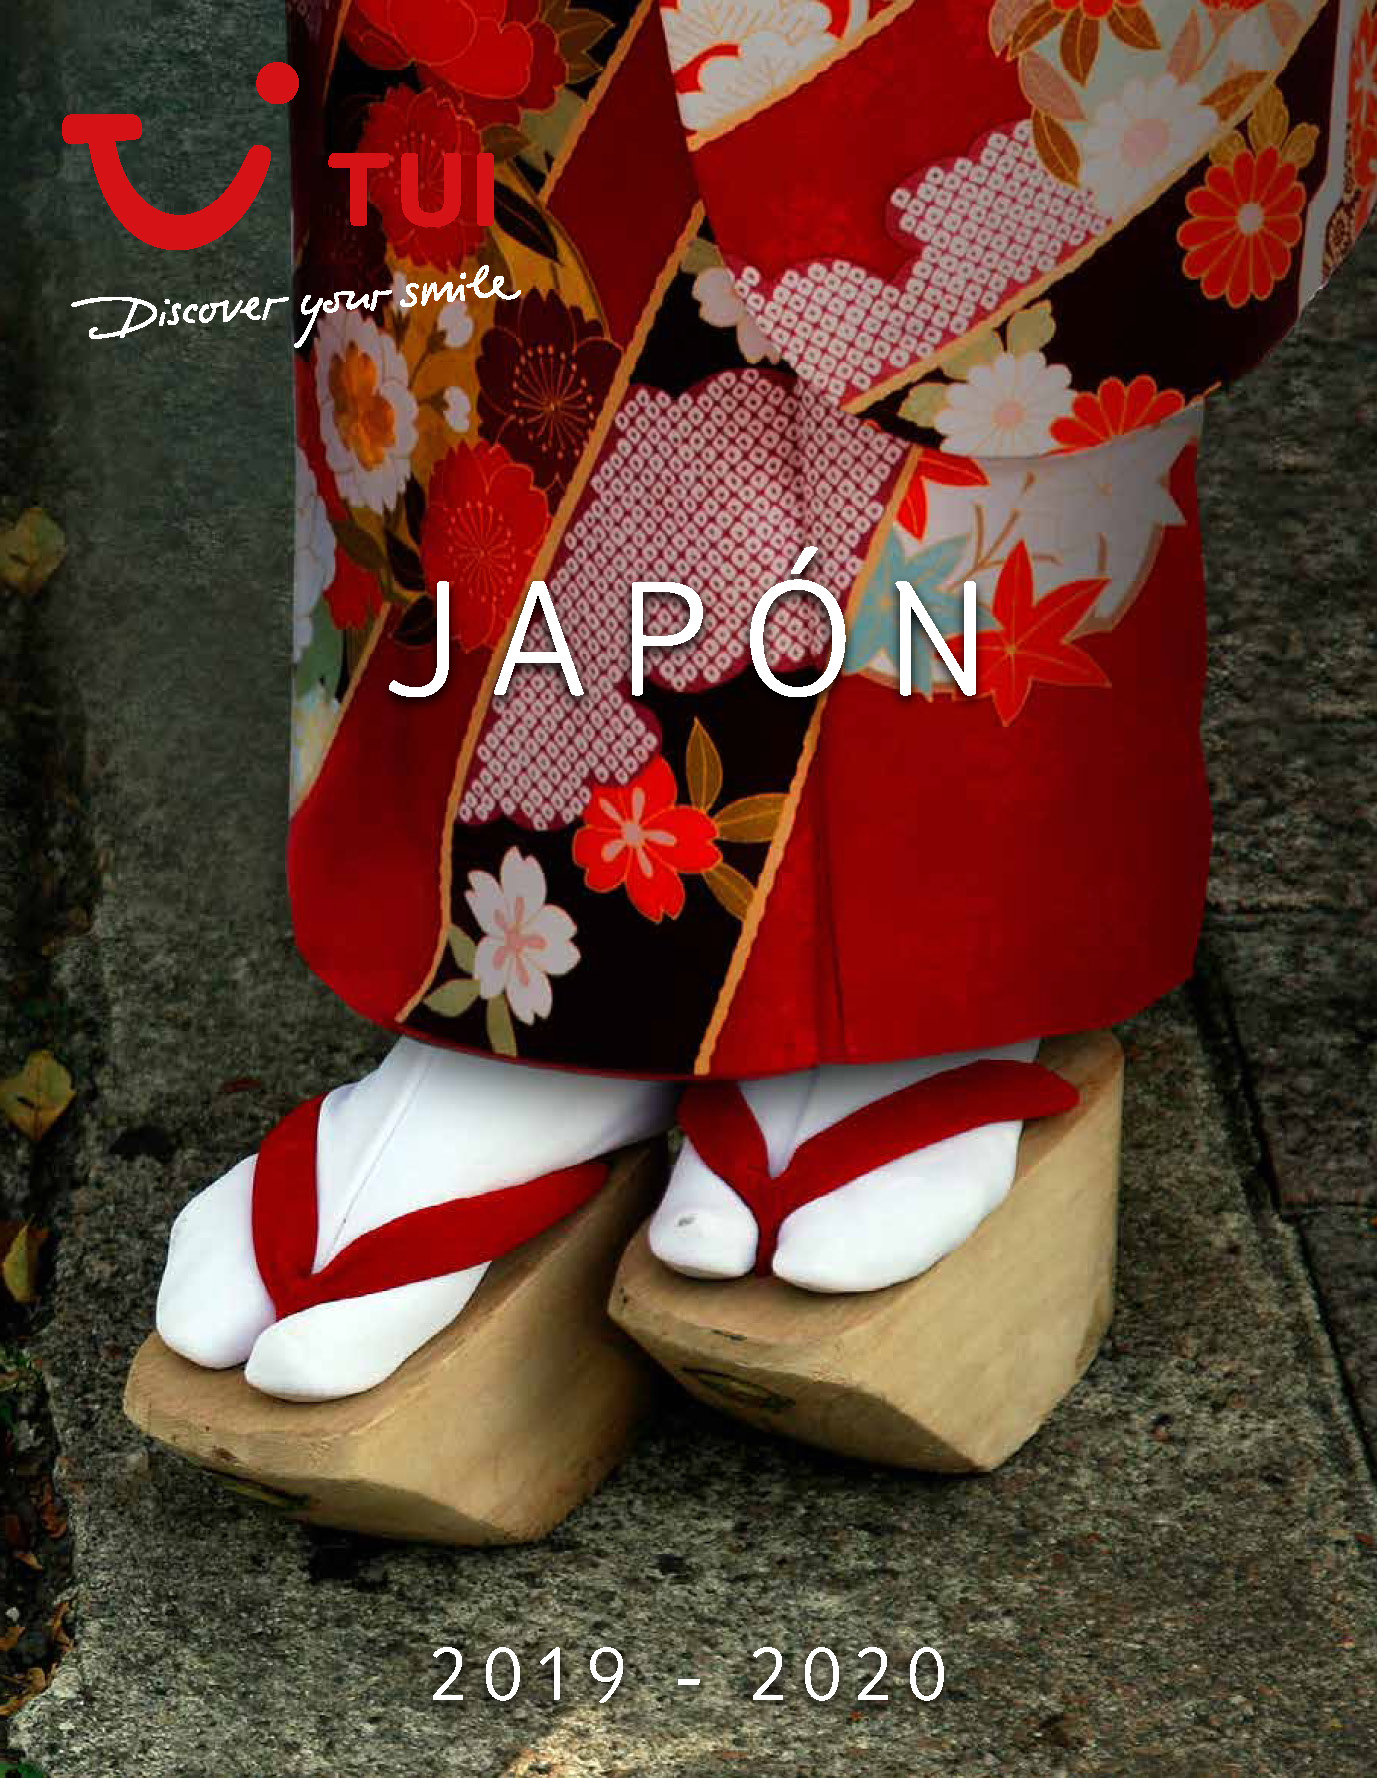 Catalogo TUI Ambassador Tours Japon 2019-2020